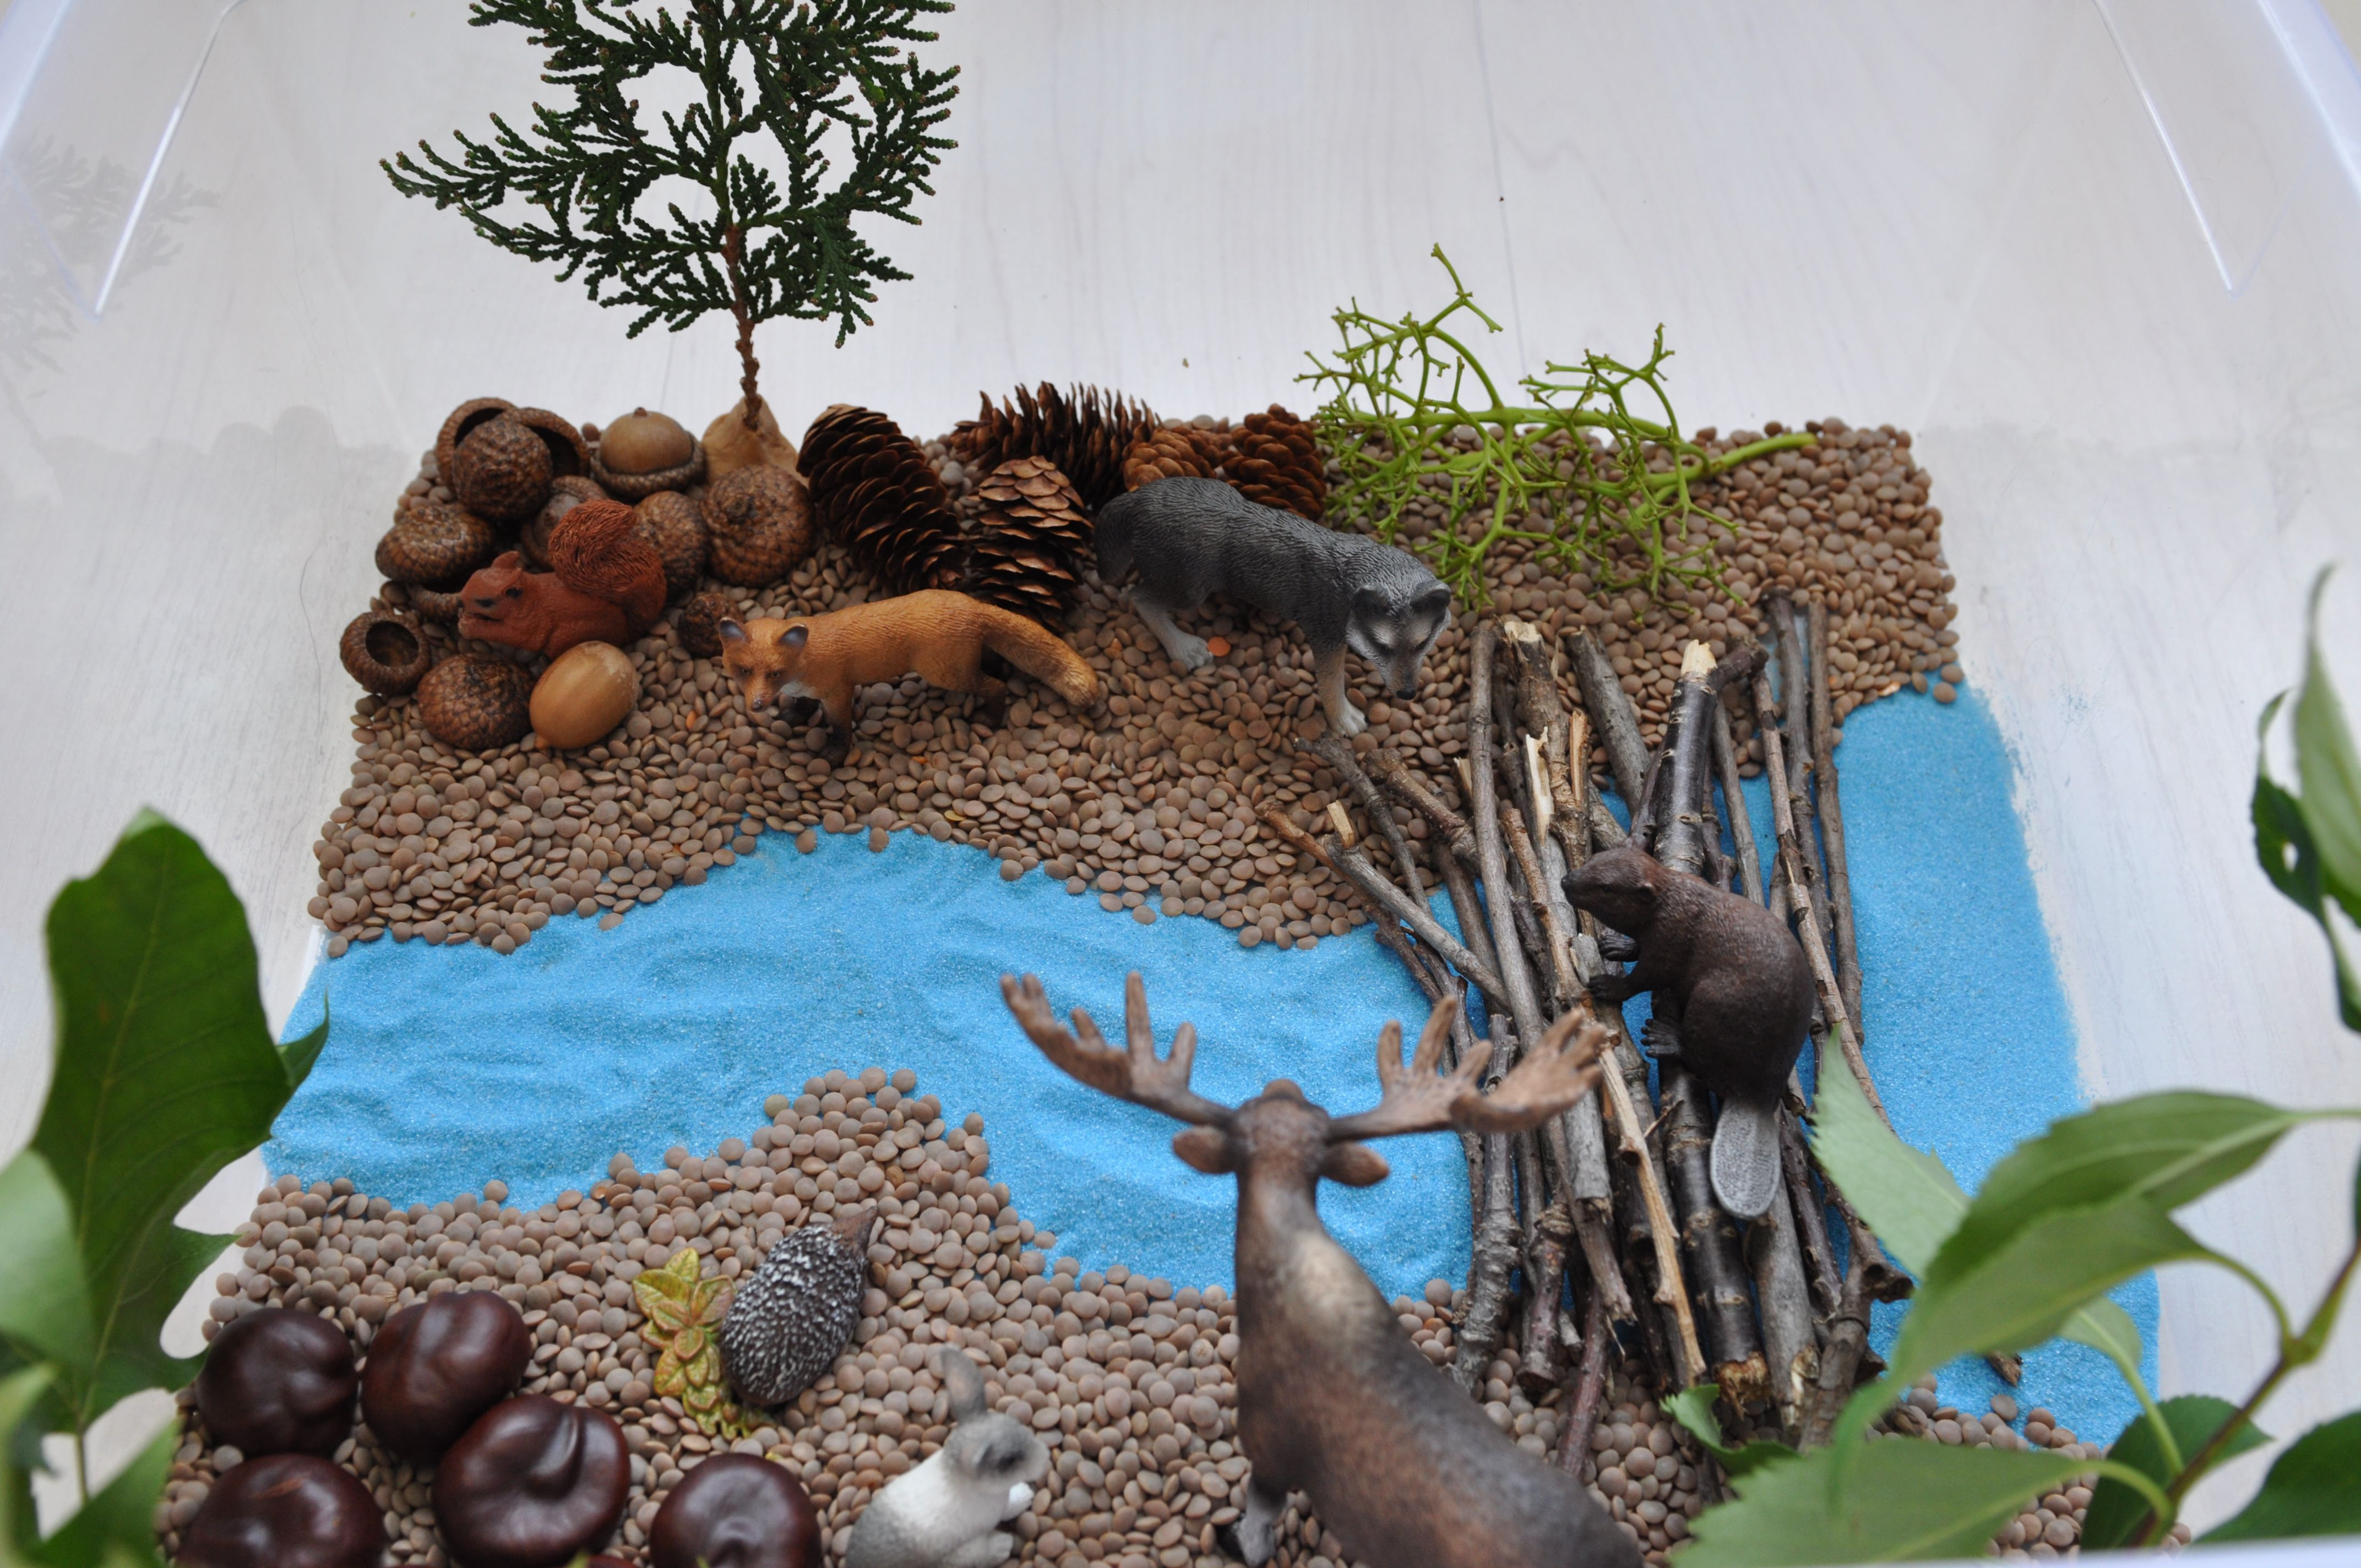 small resolution of make a beaver dam out of sticks and set up a forest with animals around it sensory bin ingredients lentils blue sand sticks chestnuts acorn caps